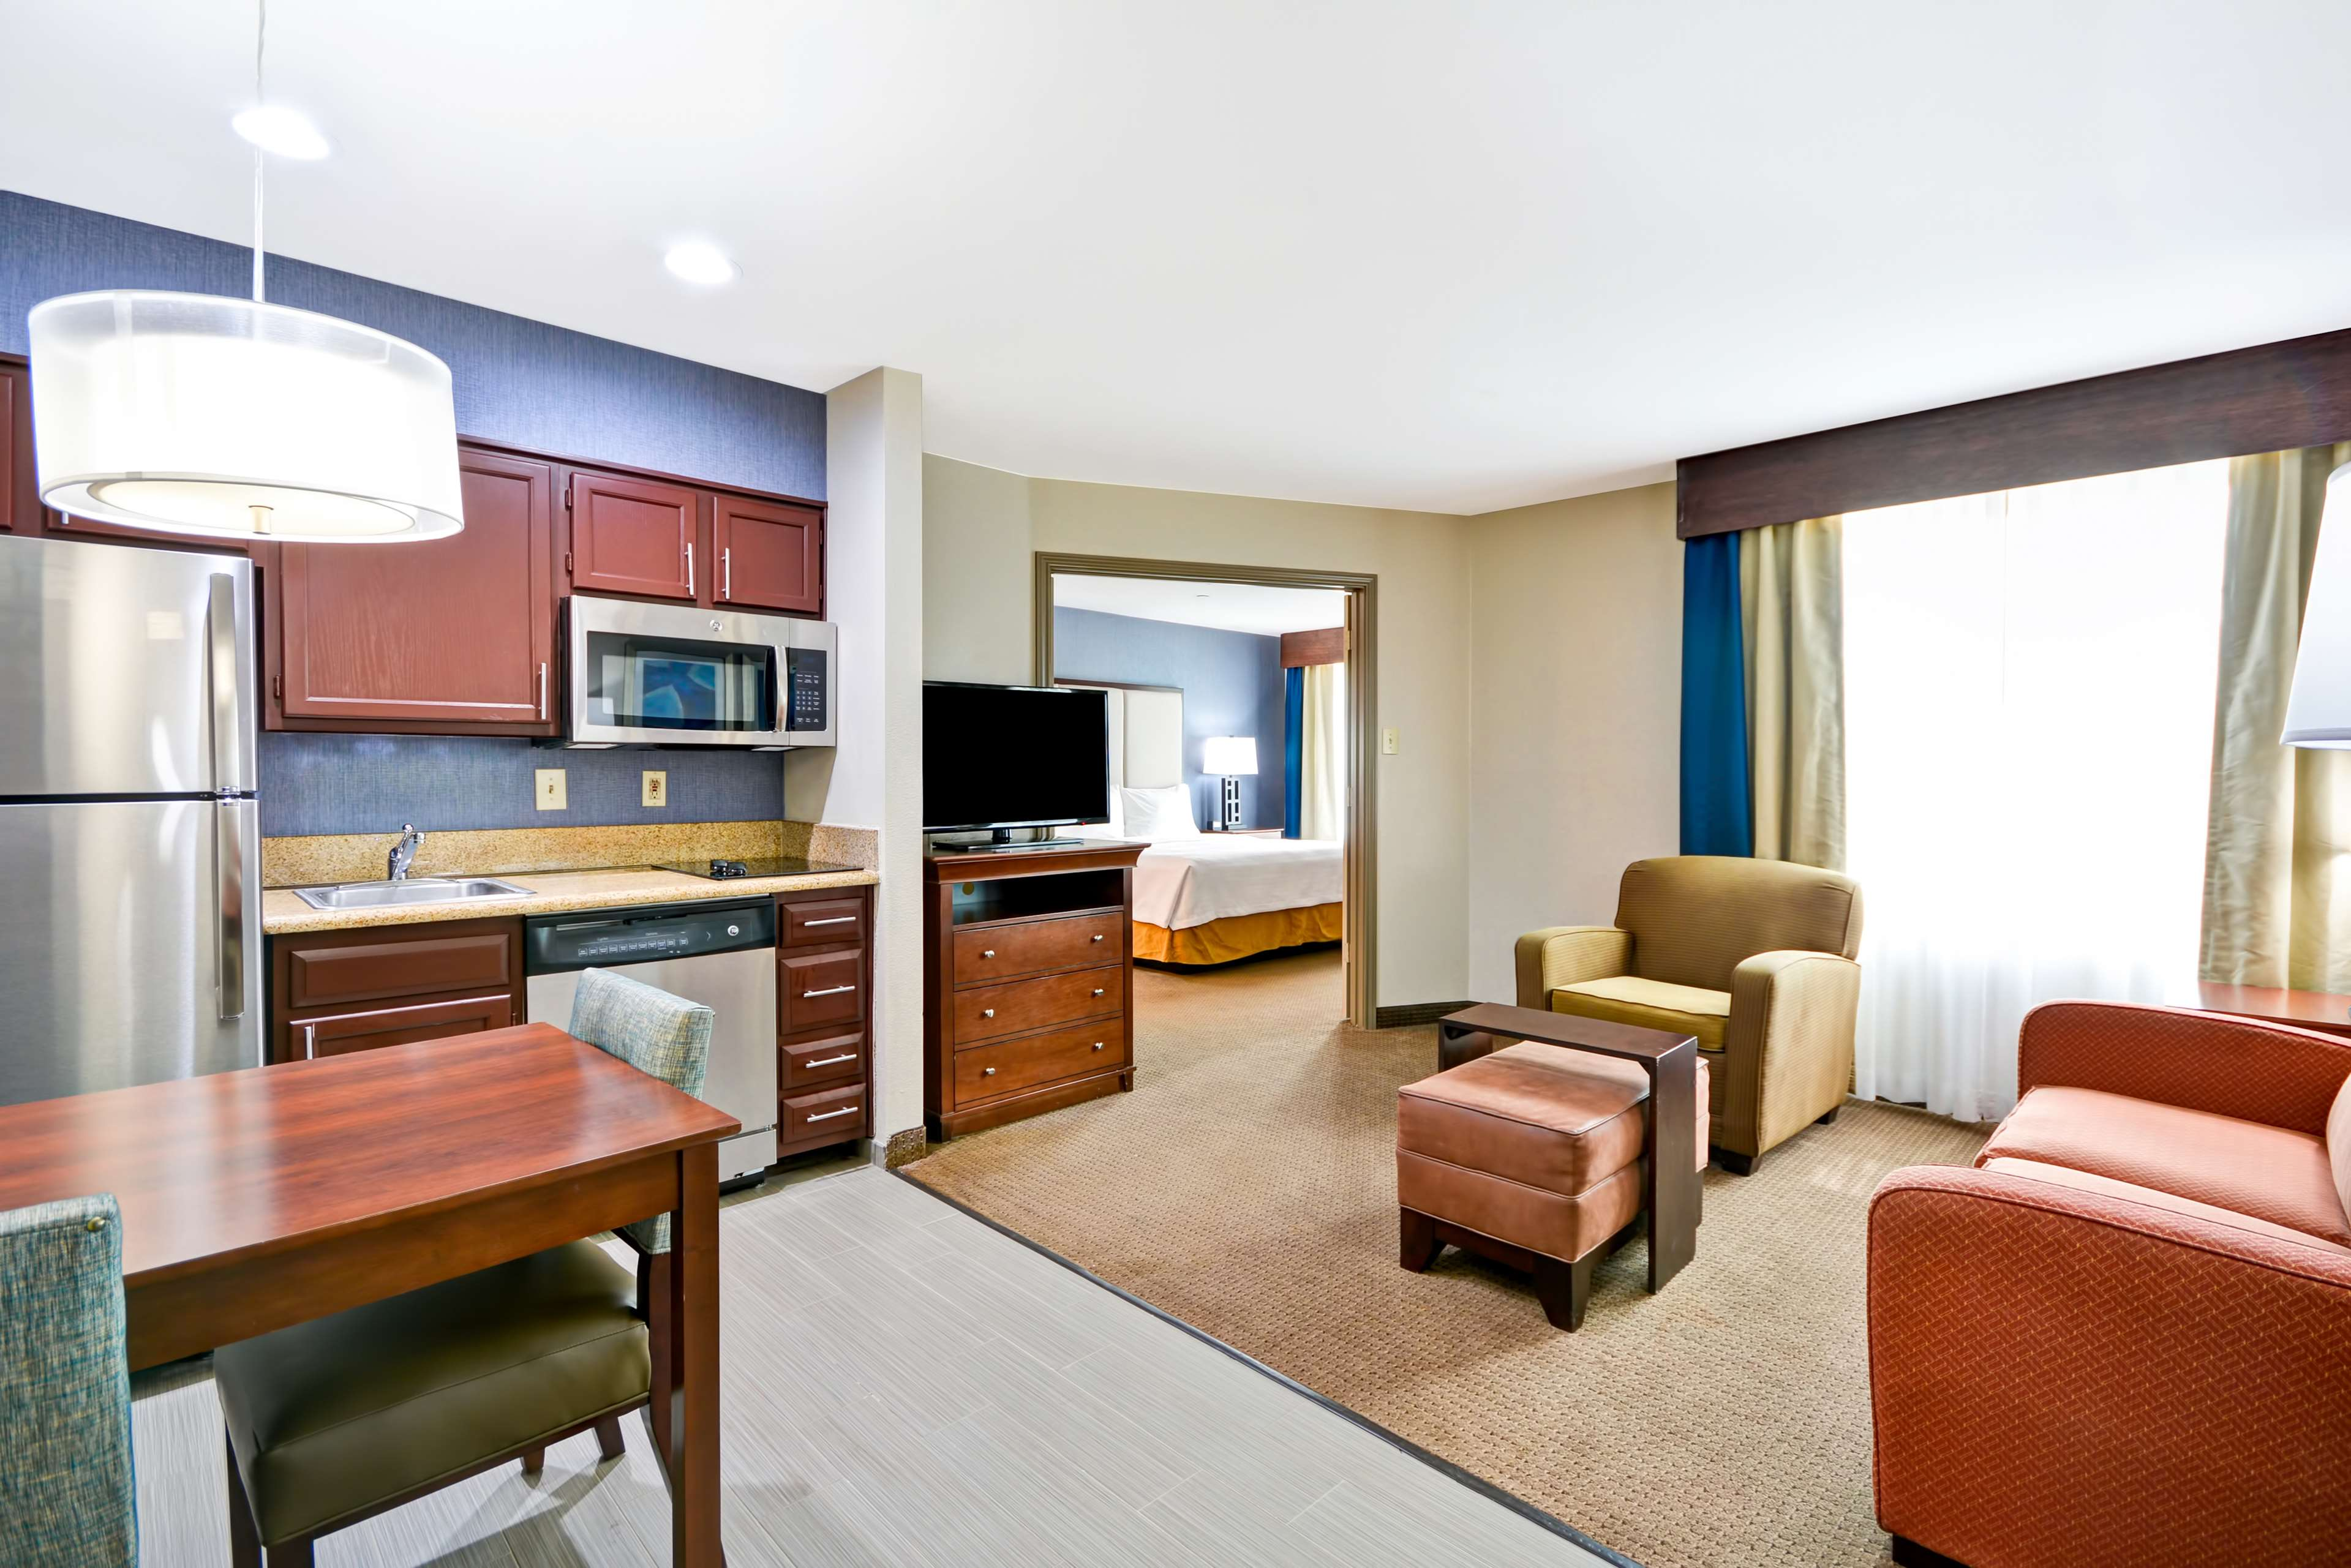 Homewood Suites by Hilton Dallas-Lewisville image 29